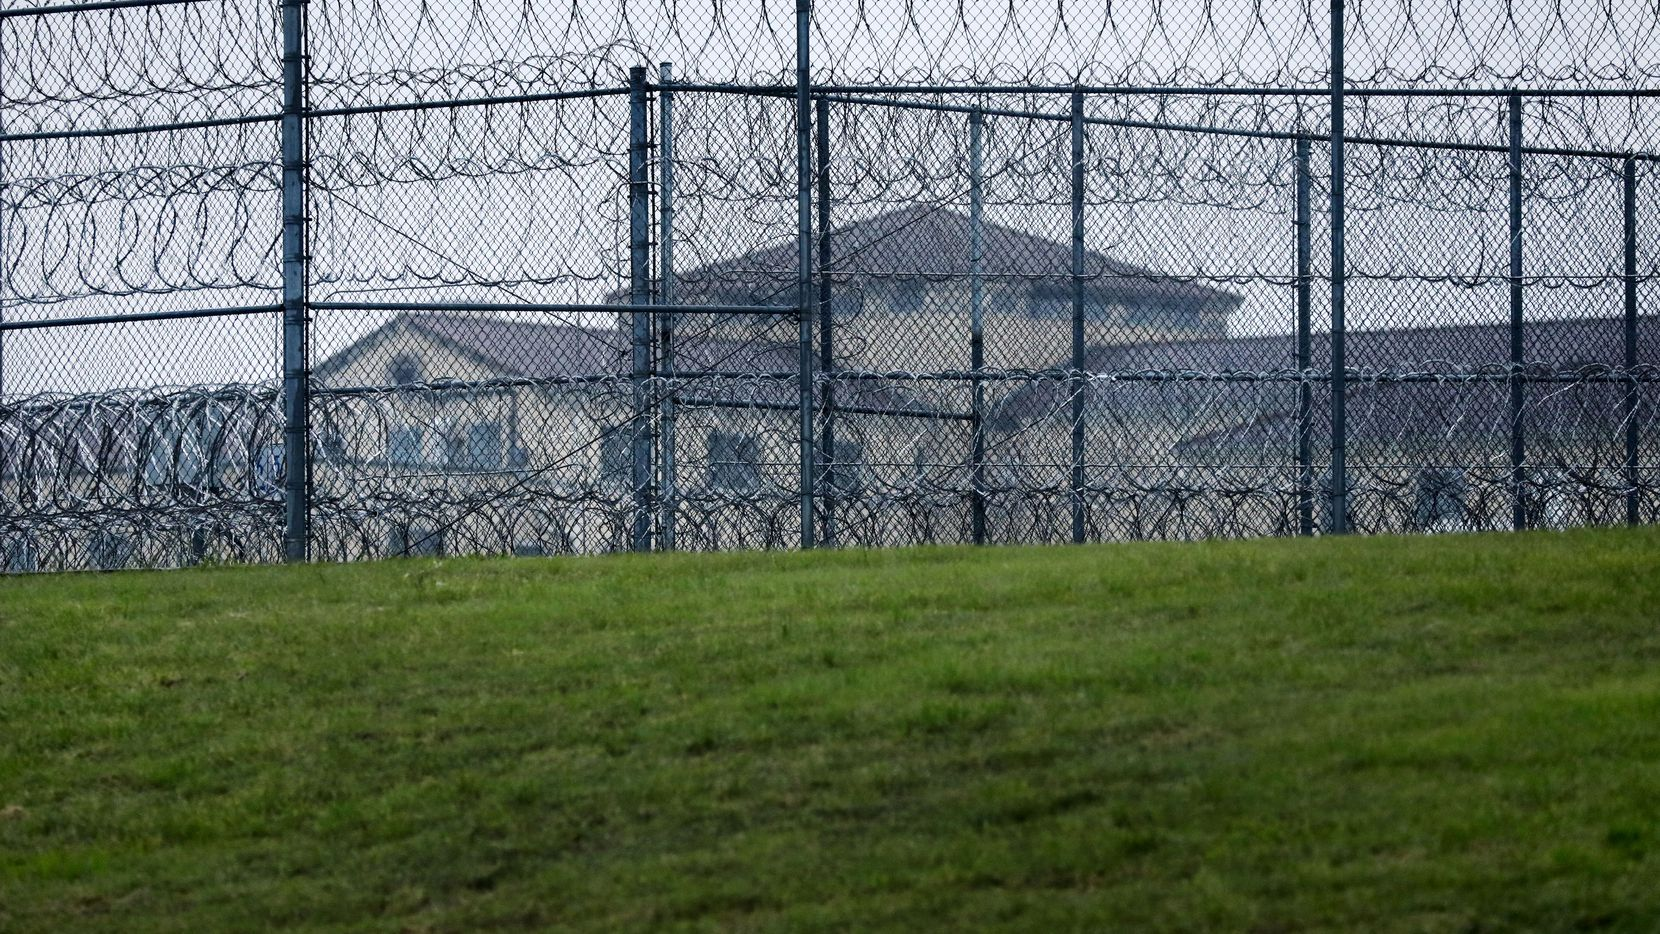 The federal medical center prison in Fort Worth has seen more coronavirus deaths than any other federal prison in the United States.